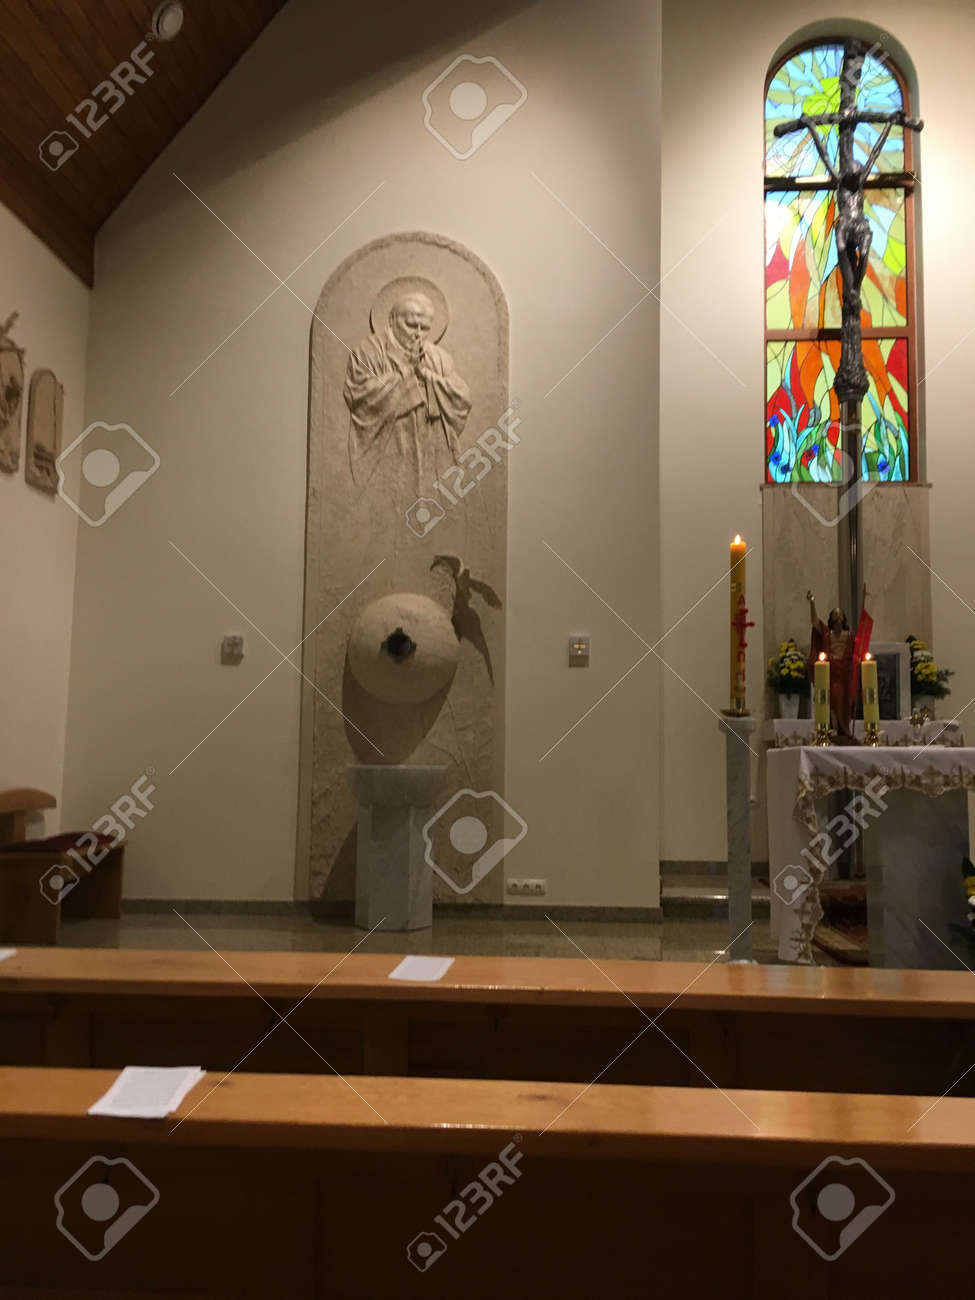 Dyrdy, Poland, May 30, 2017: The interior of the branch church of Saint John Paul II in Dyrdy, Miotek parish in the Diocese of Gliwice - 158443603